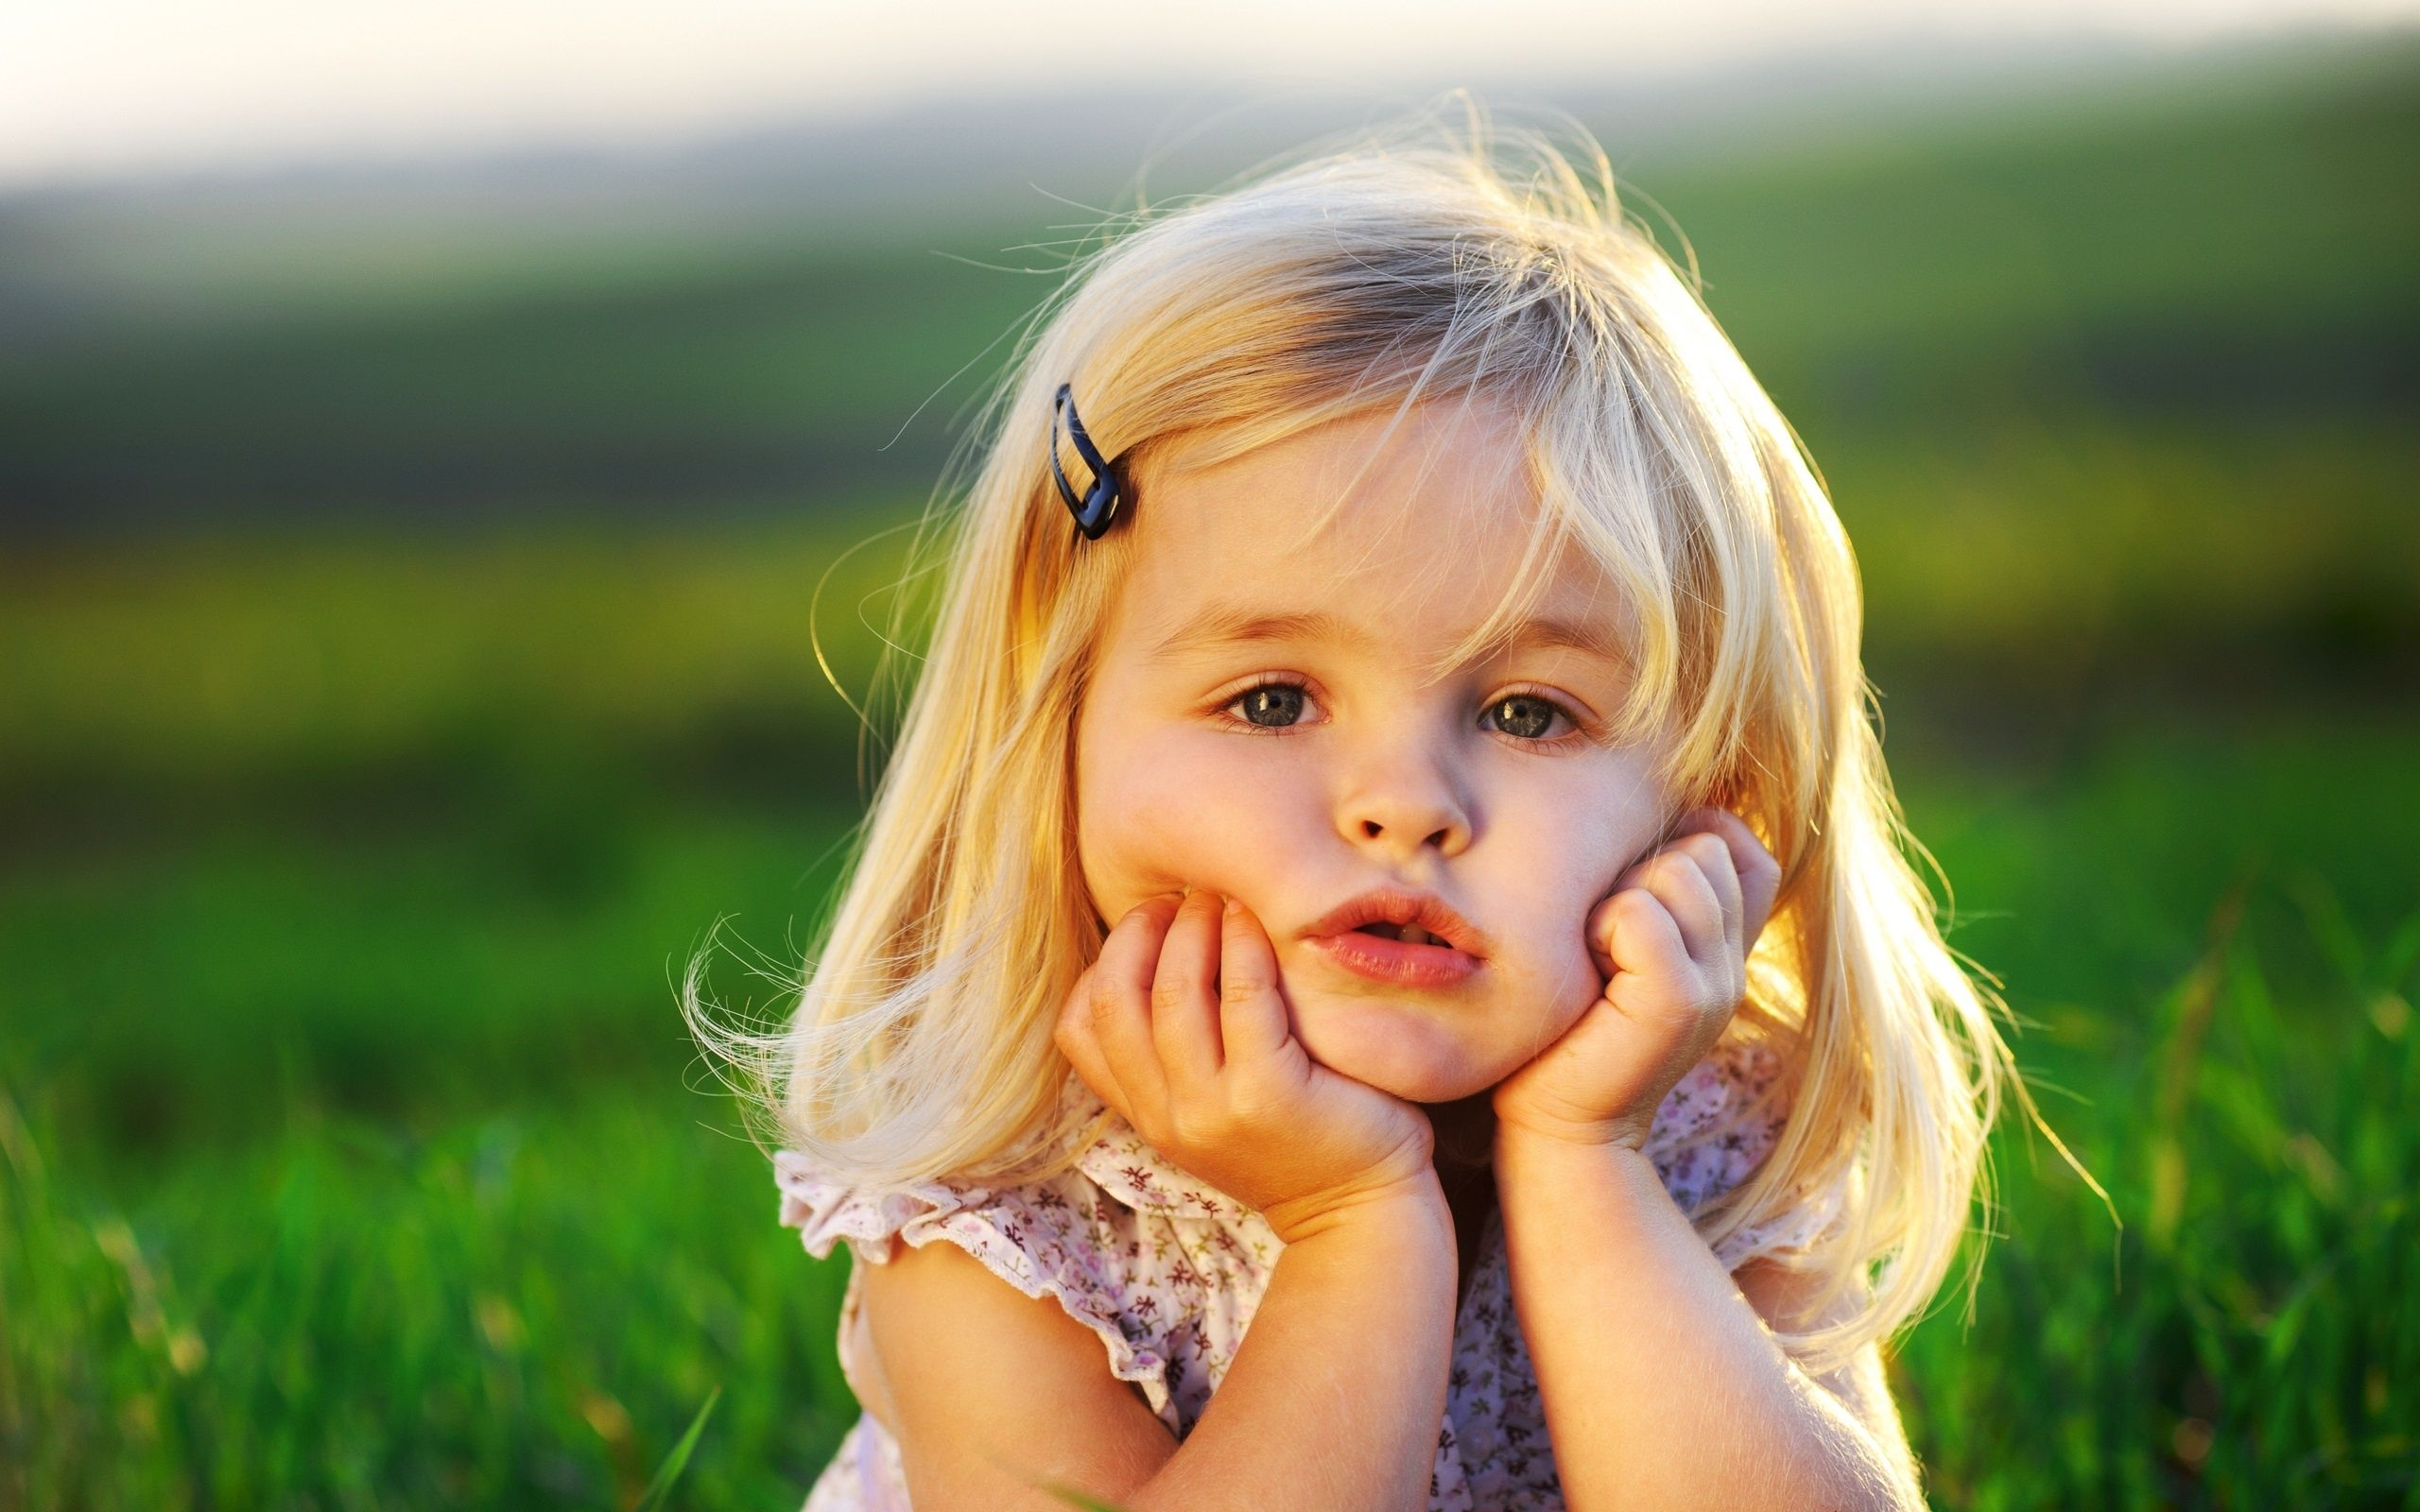 cute baby wallpapers | cute babies pictures | cute baby girl